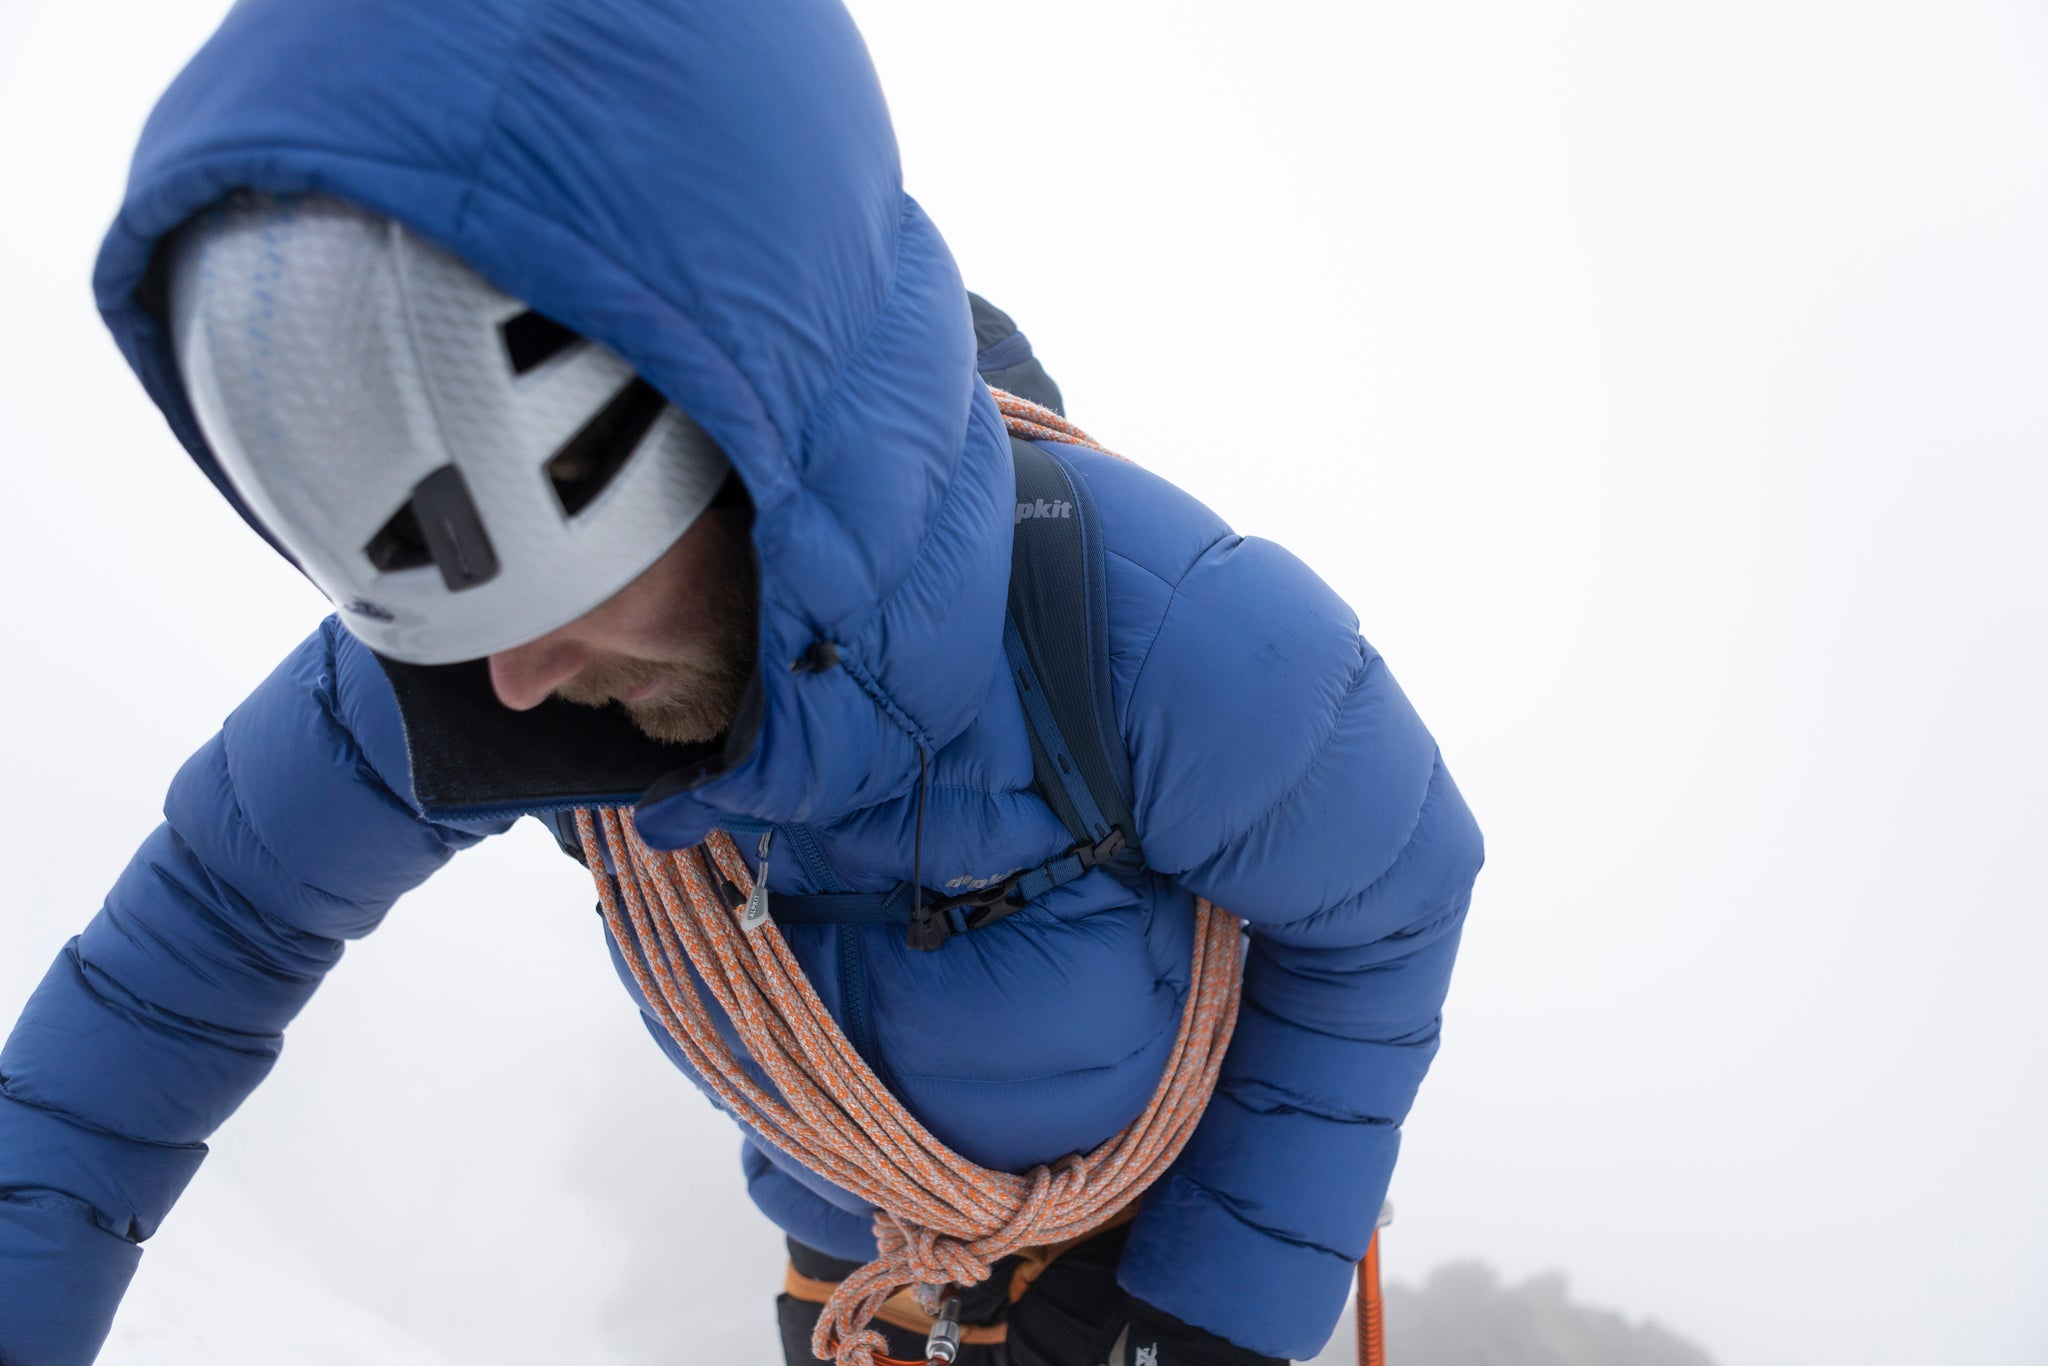 A man struggling up a steep slope in the snow wearing the Fantom hydrophobic down jacket with ethically sourced goose down